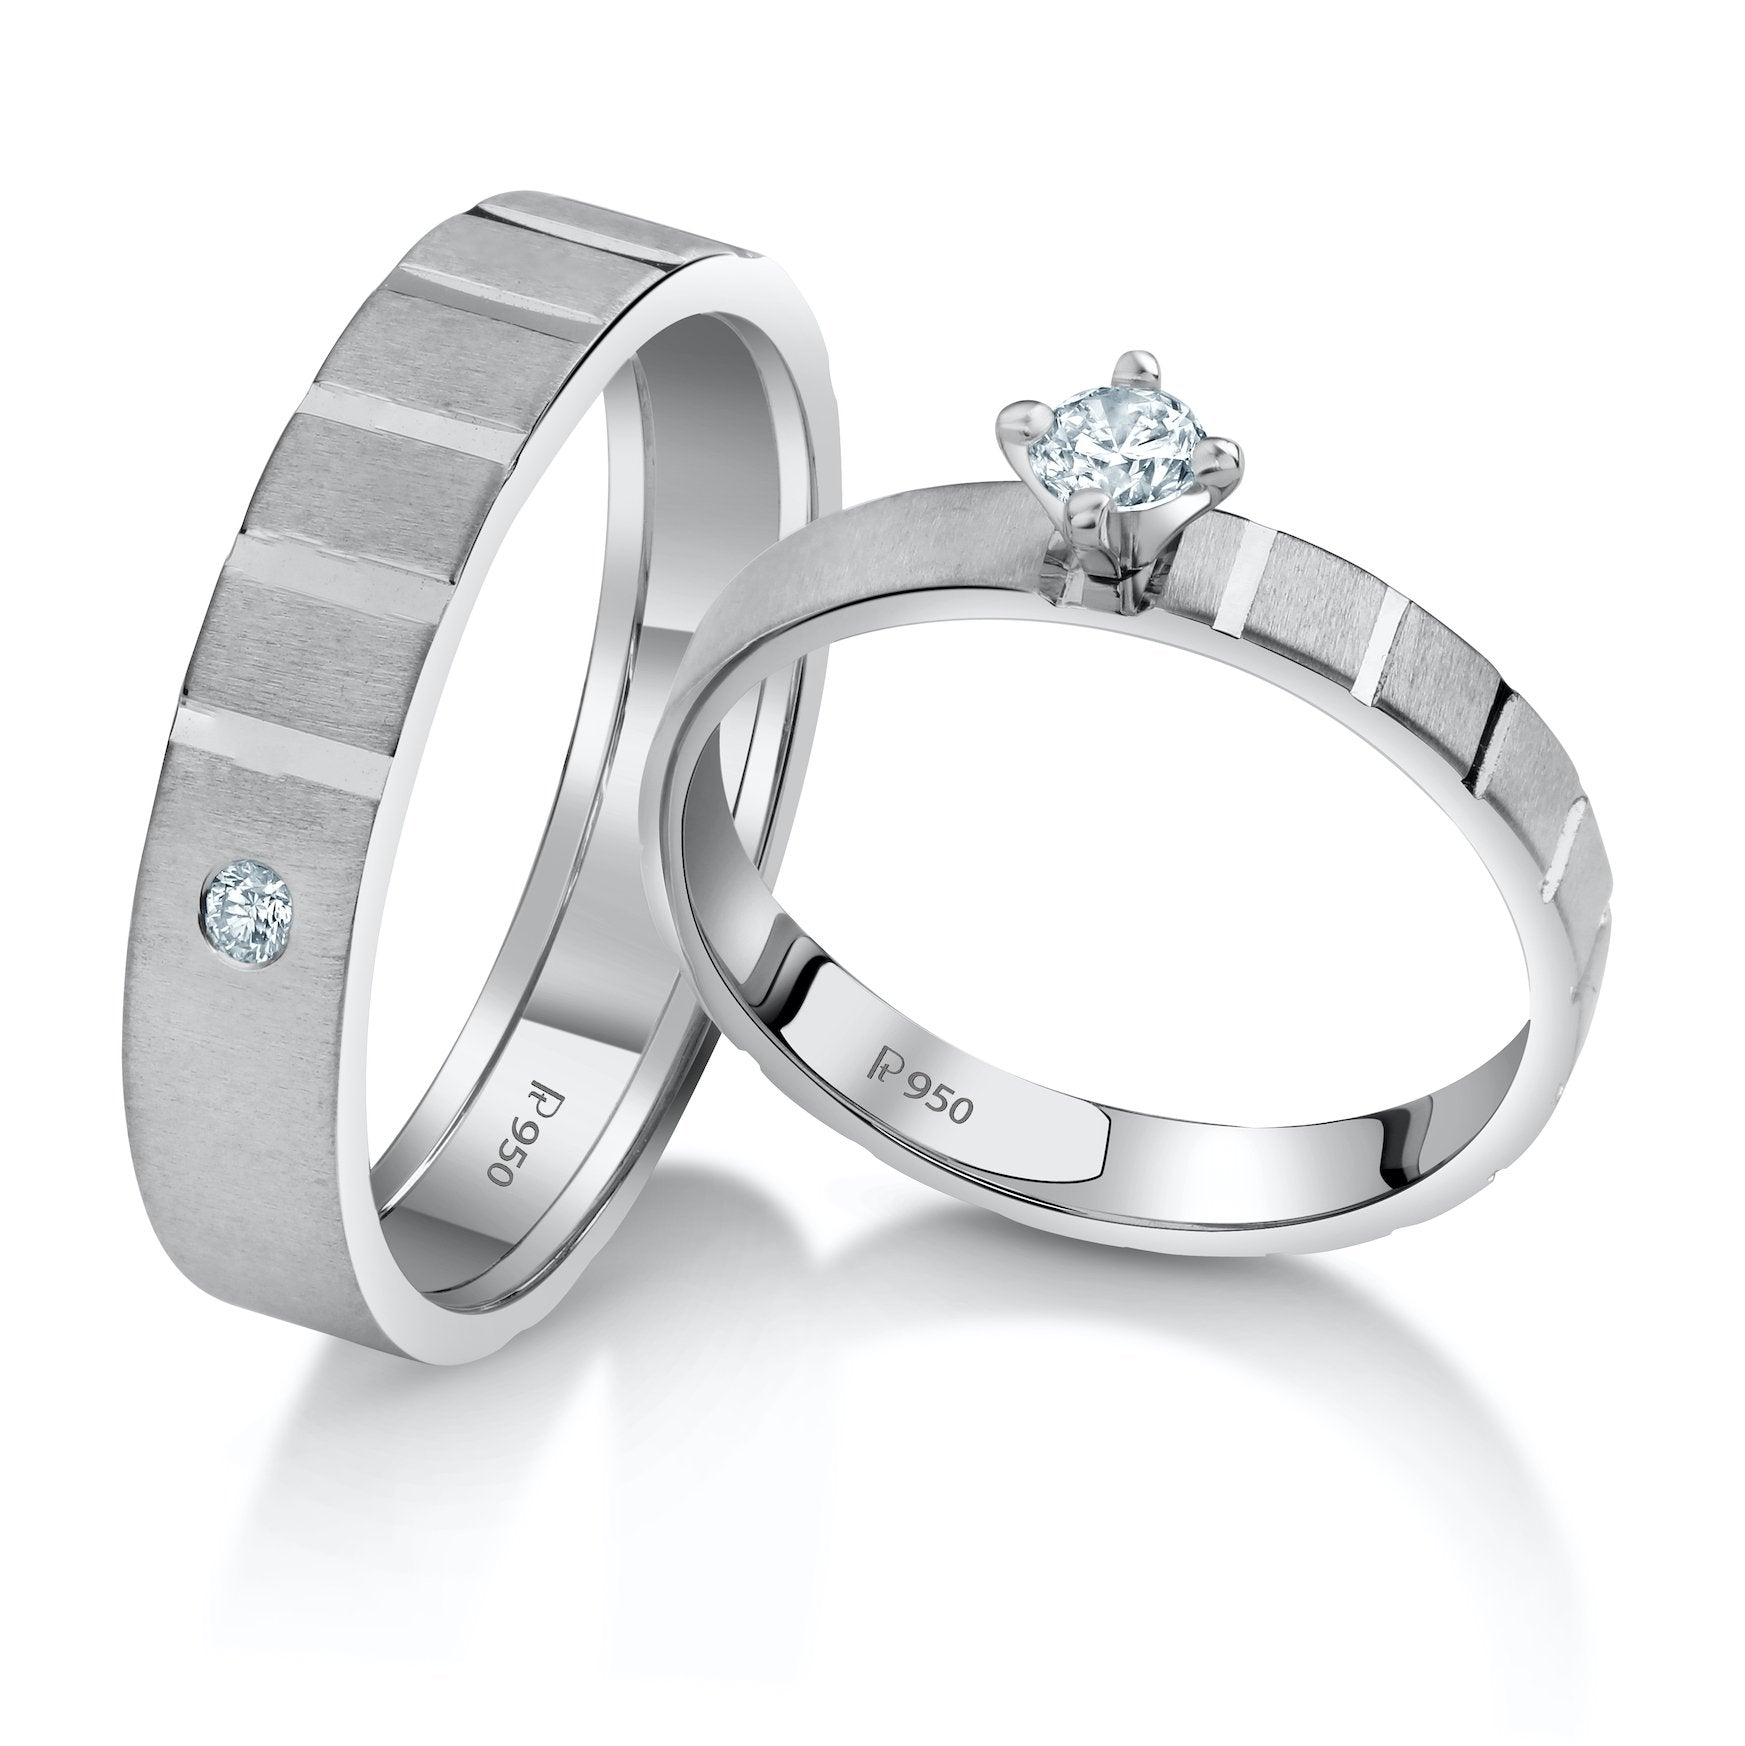 A Mighty Match Matte Finish Platinum Couple Rings with Single Diamonds JL PT 953